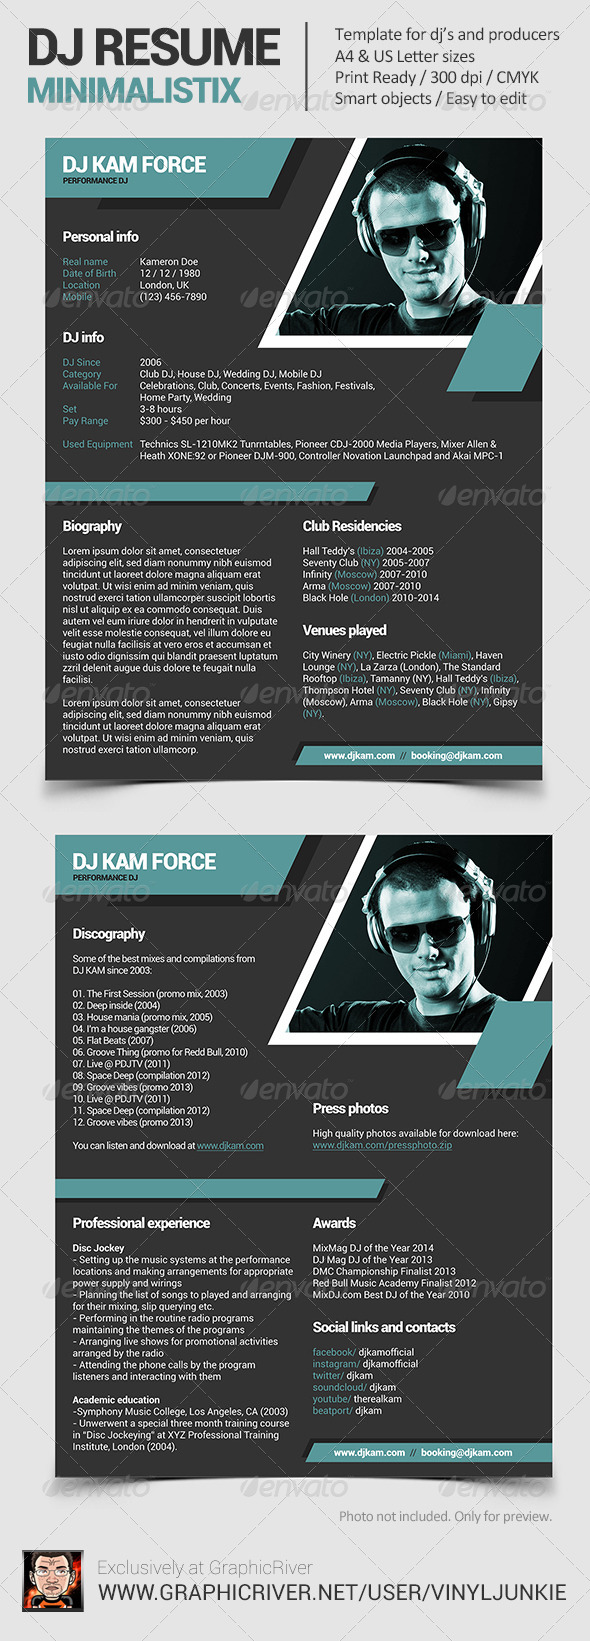 Minimalistix - DJ Resume / Press Kit by vinyljunkie | GraphicRiver